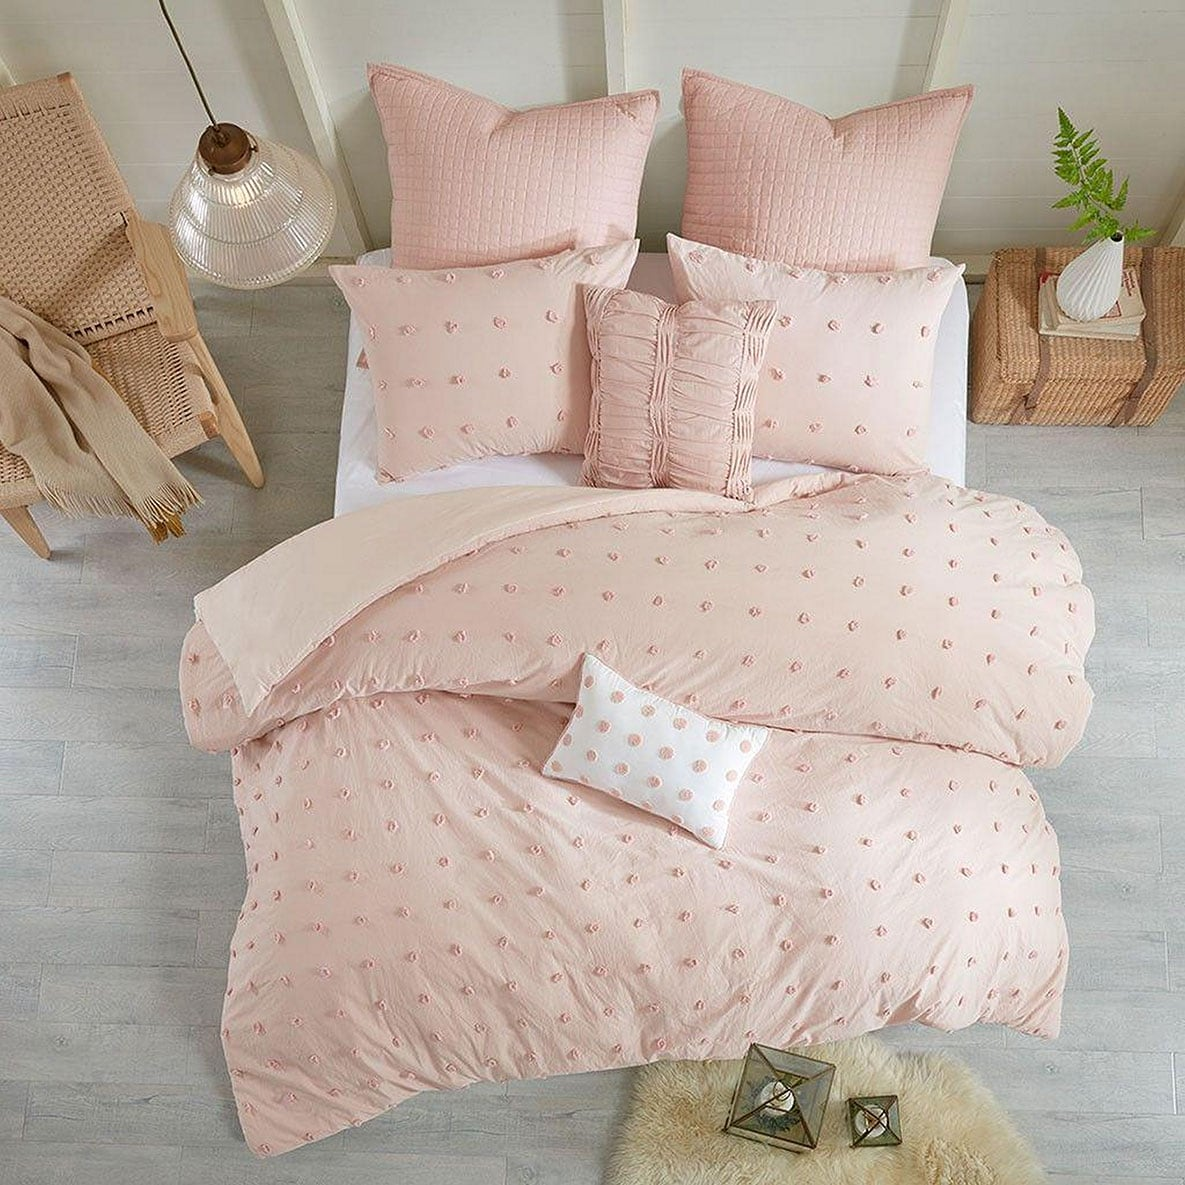 The Brooklyn Bedding Collection - Blush